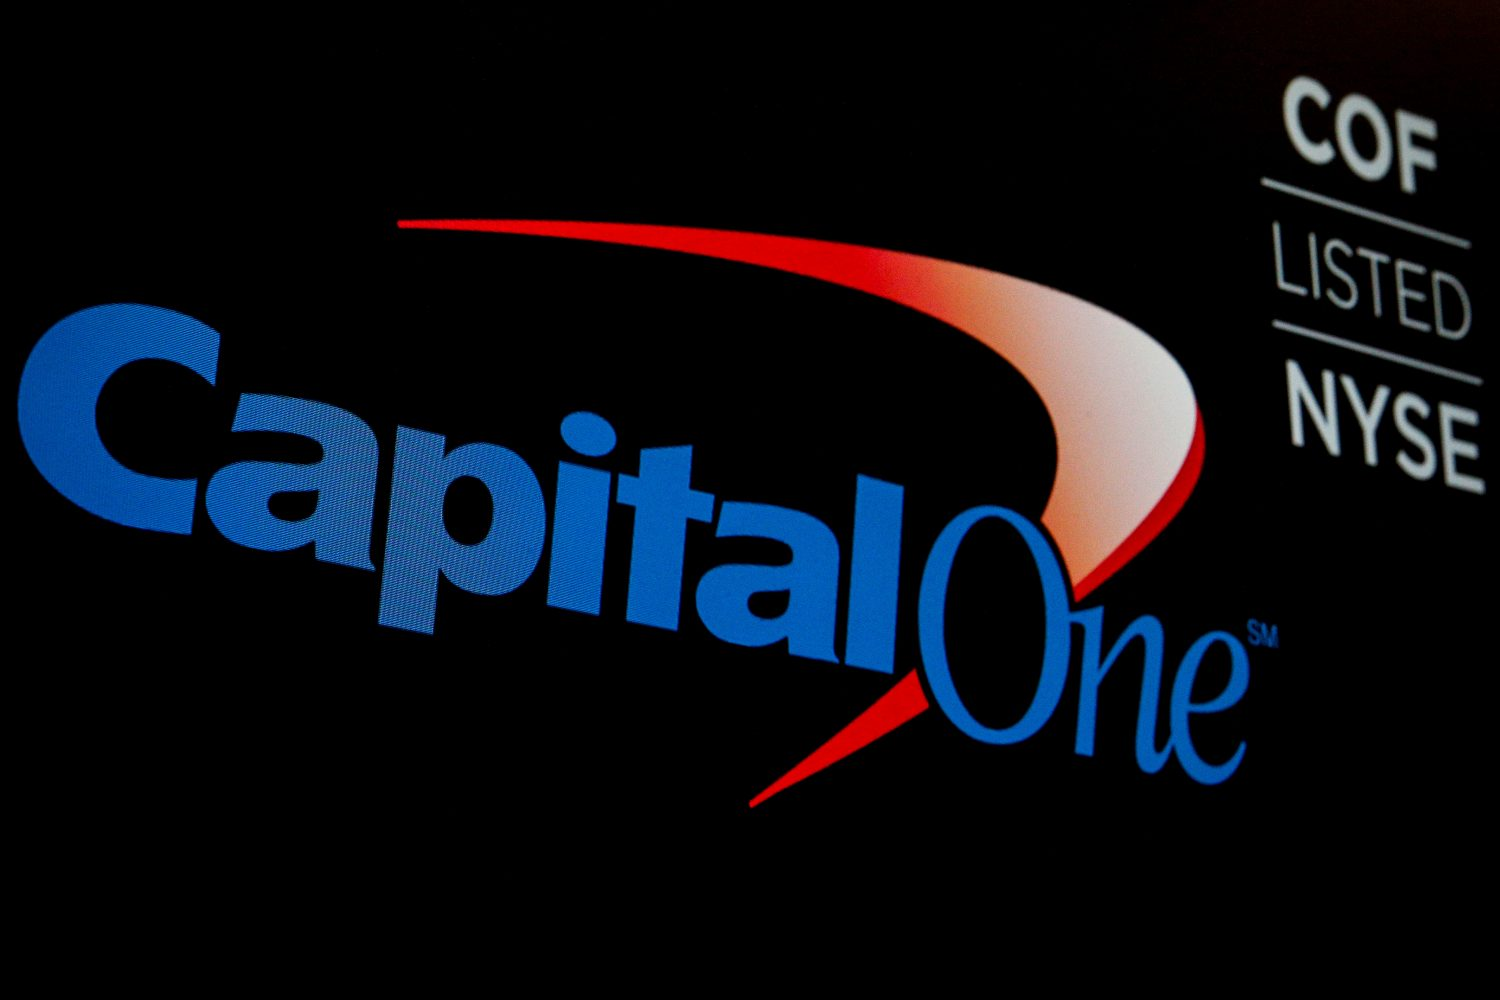 FILE PHOTO: The logo and ticker for Capital One are displayed on a screen on the floor of the New York Stock Exchange (NYSE) in New York, U.S., May 21, 2018. REUTERS/Brendan McDermid/File Photo